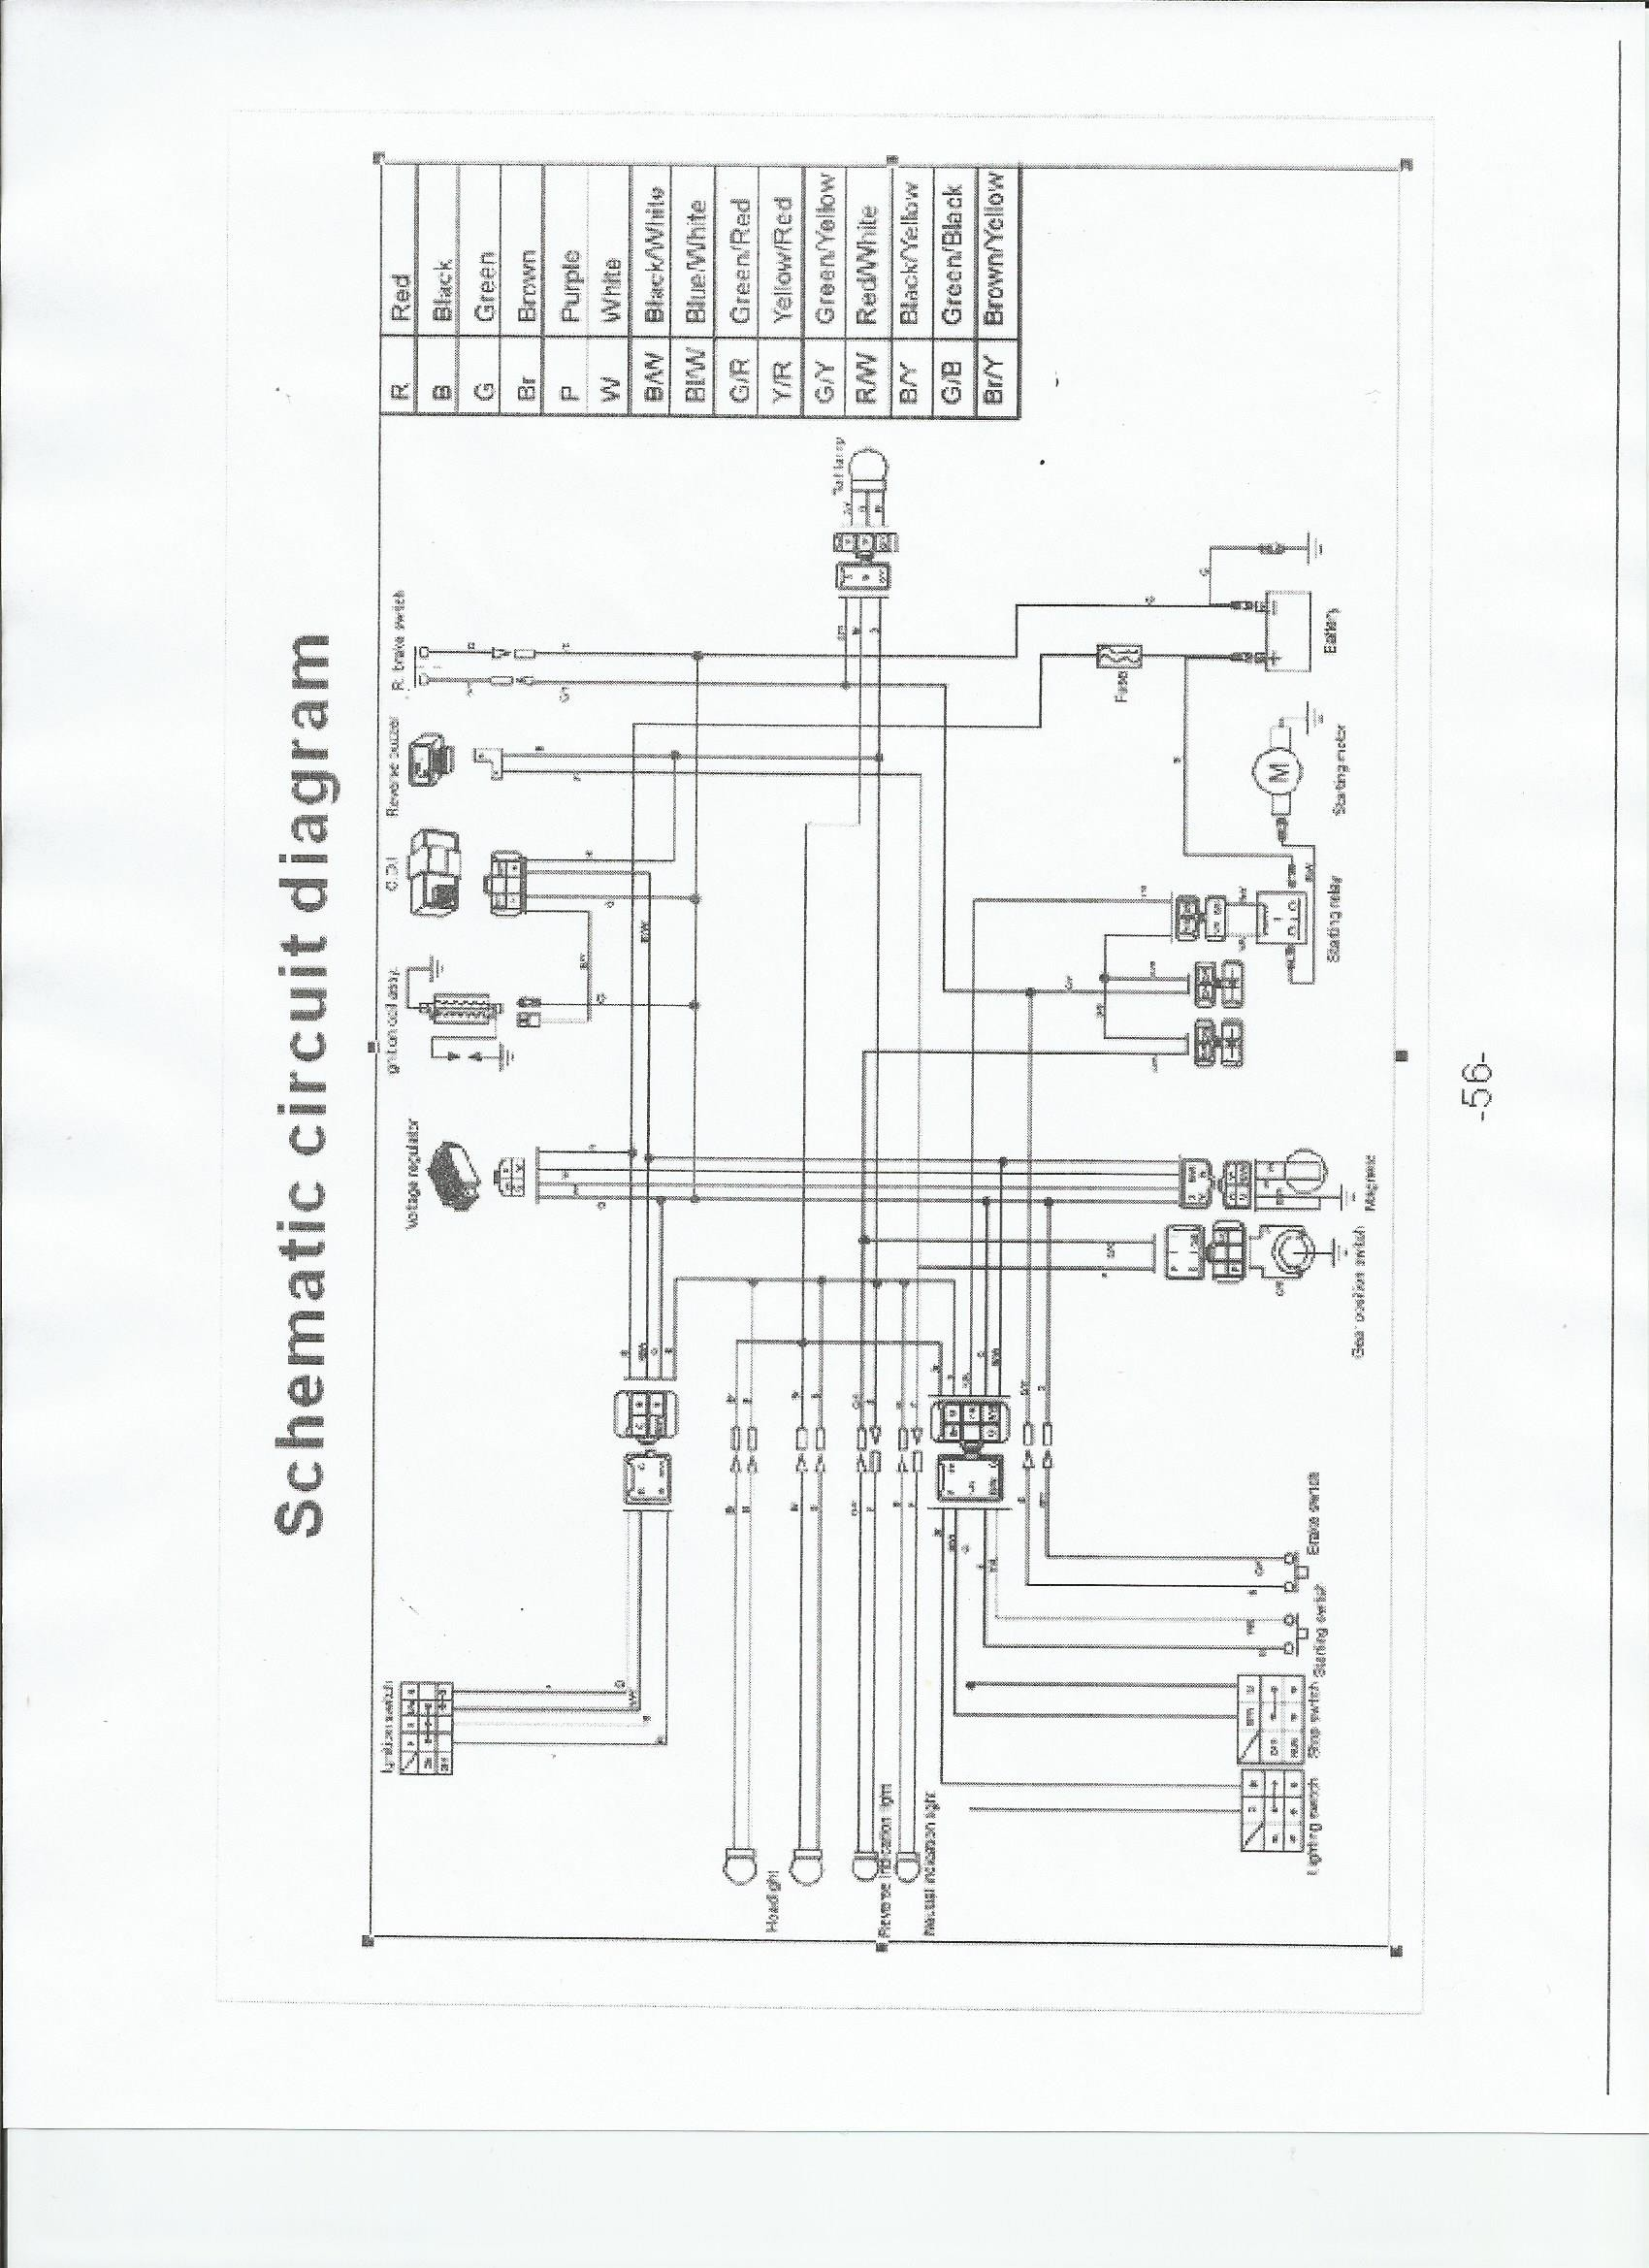 125cc 4 stroke atv wiring diagram repair manual Peace Sports 125Cc ATV Wiring Diagram